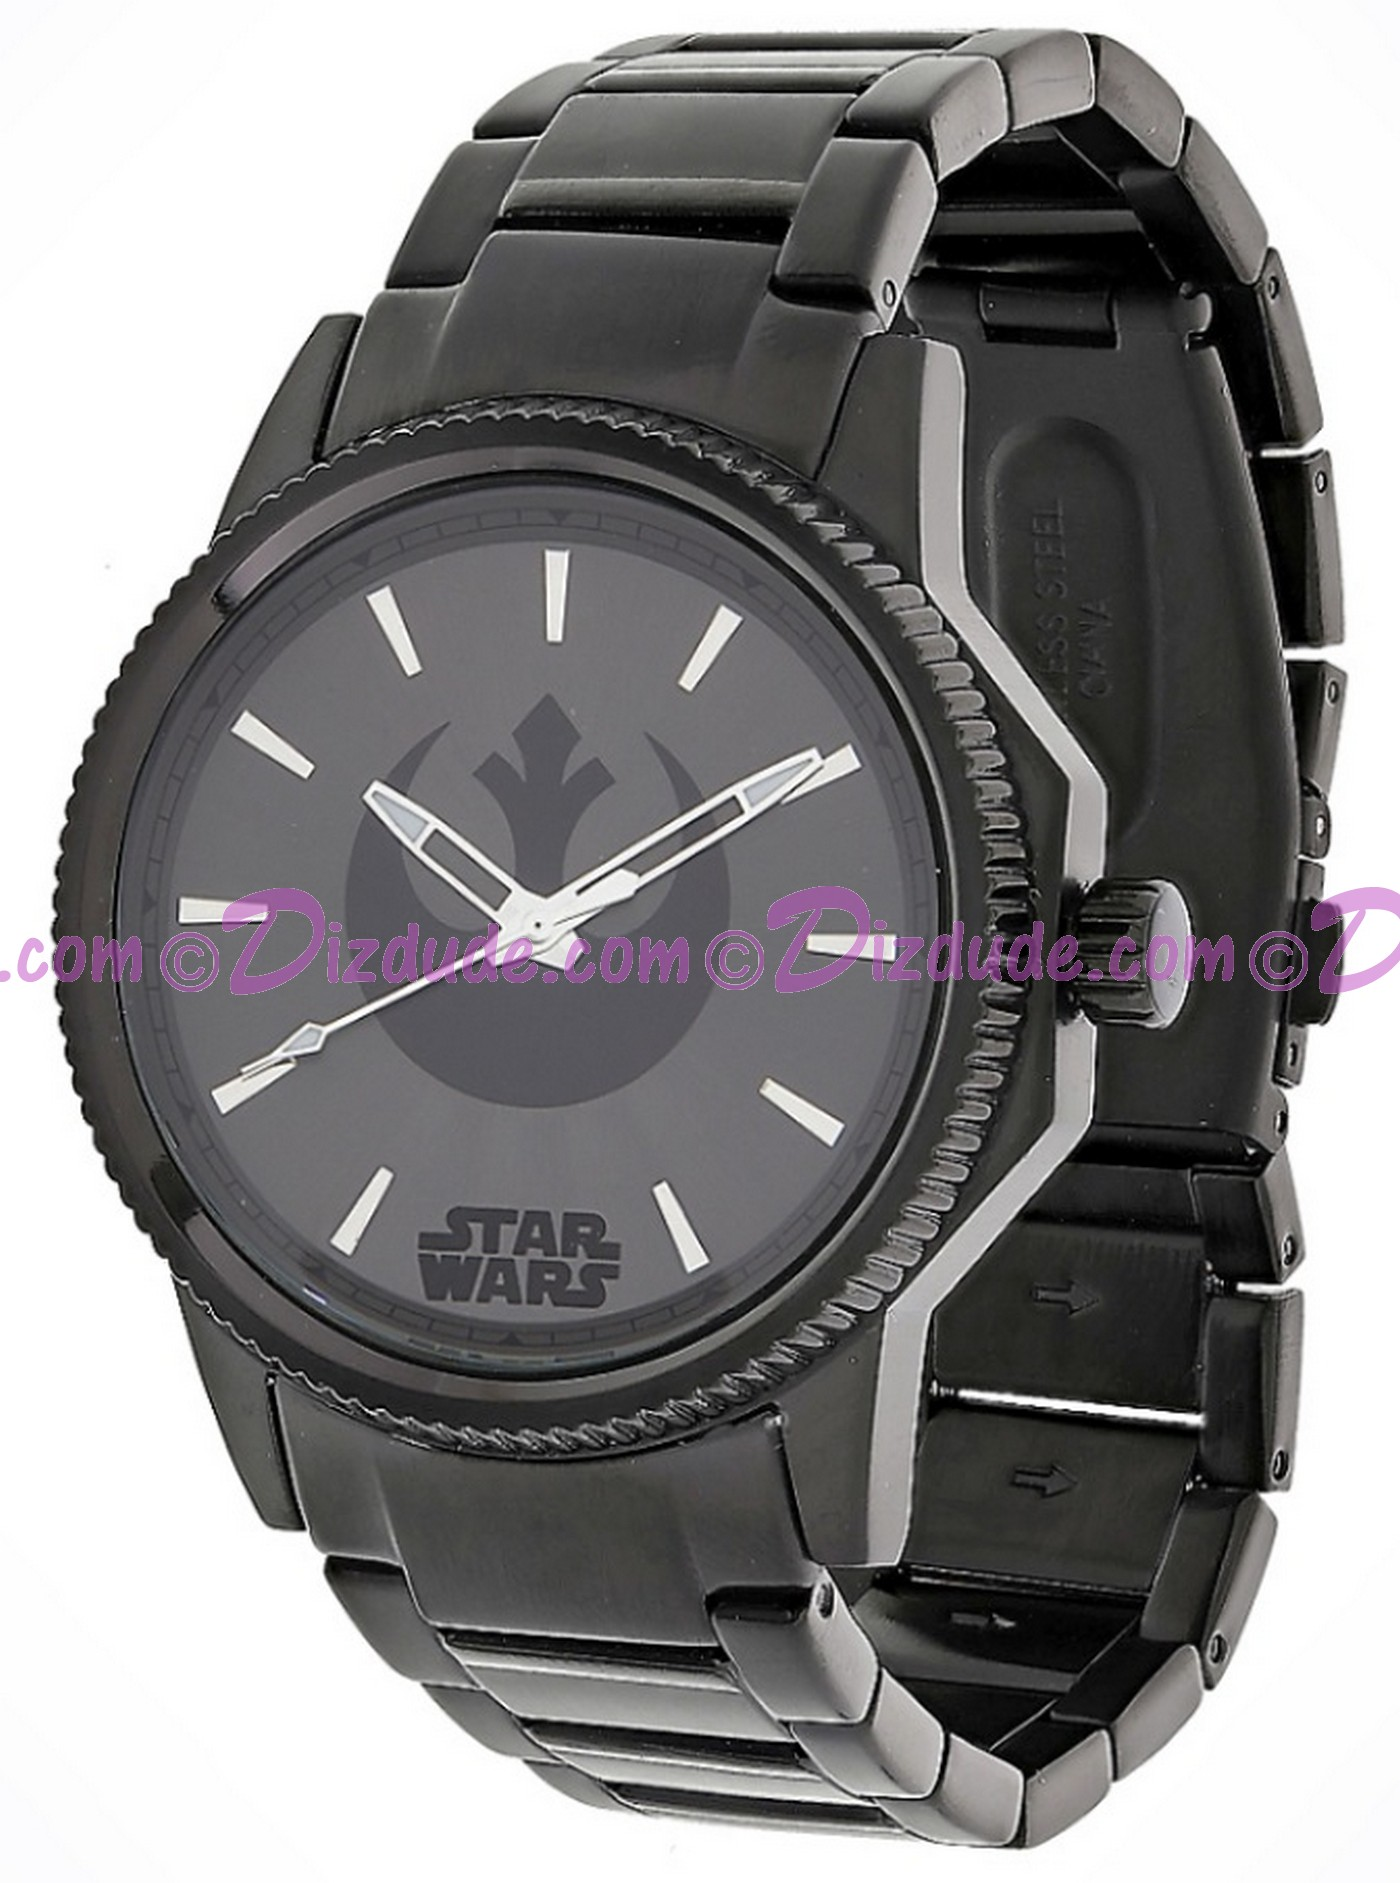 Star Wars Alliance Starbird Stainless Steel Wrist Watch